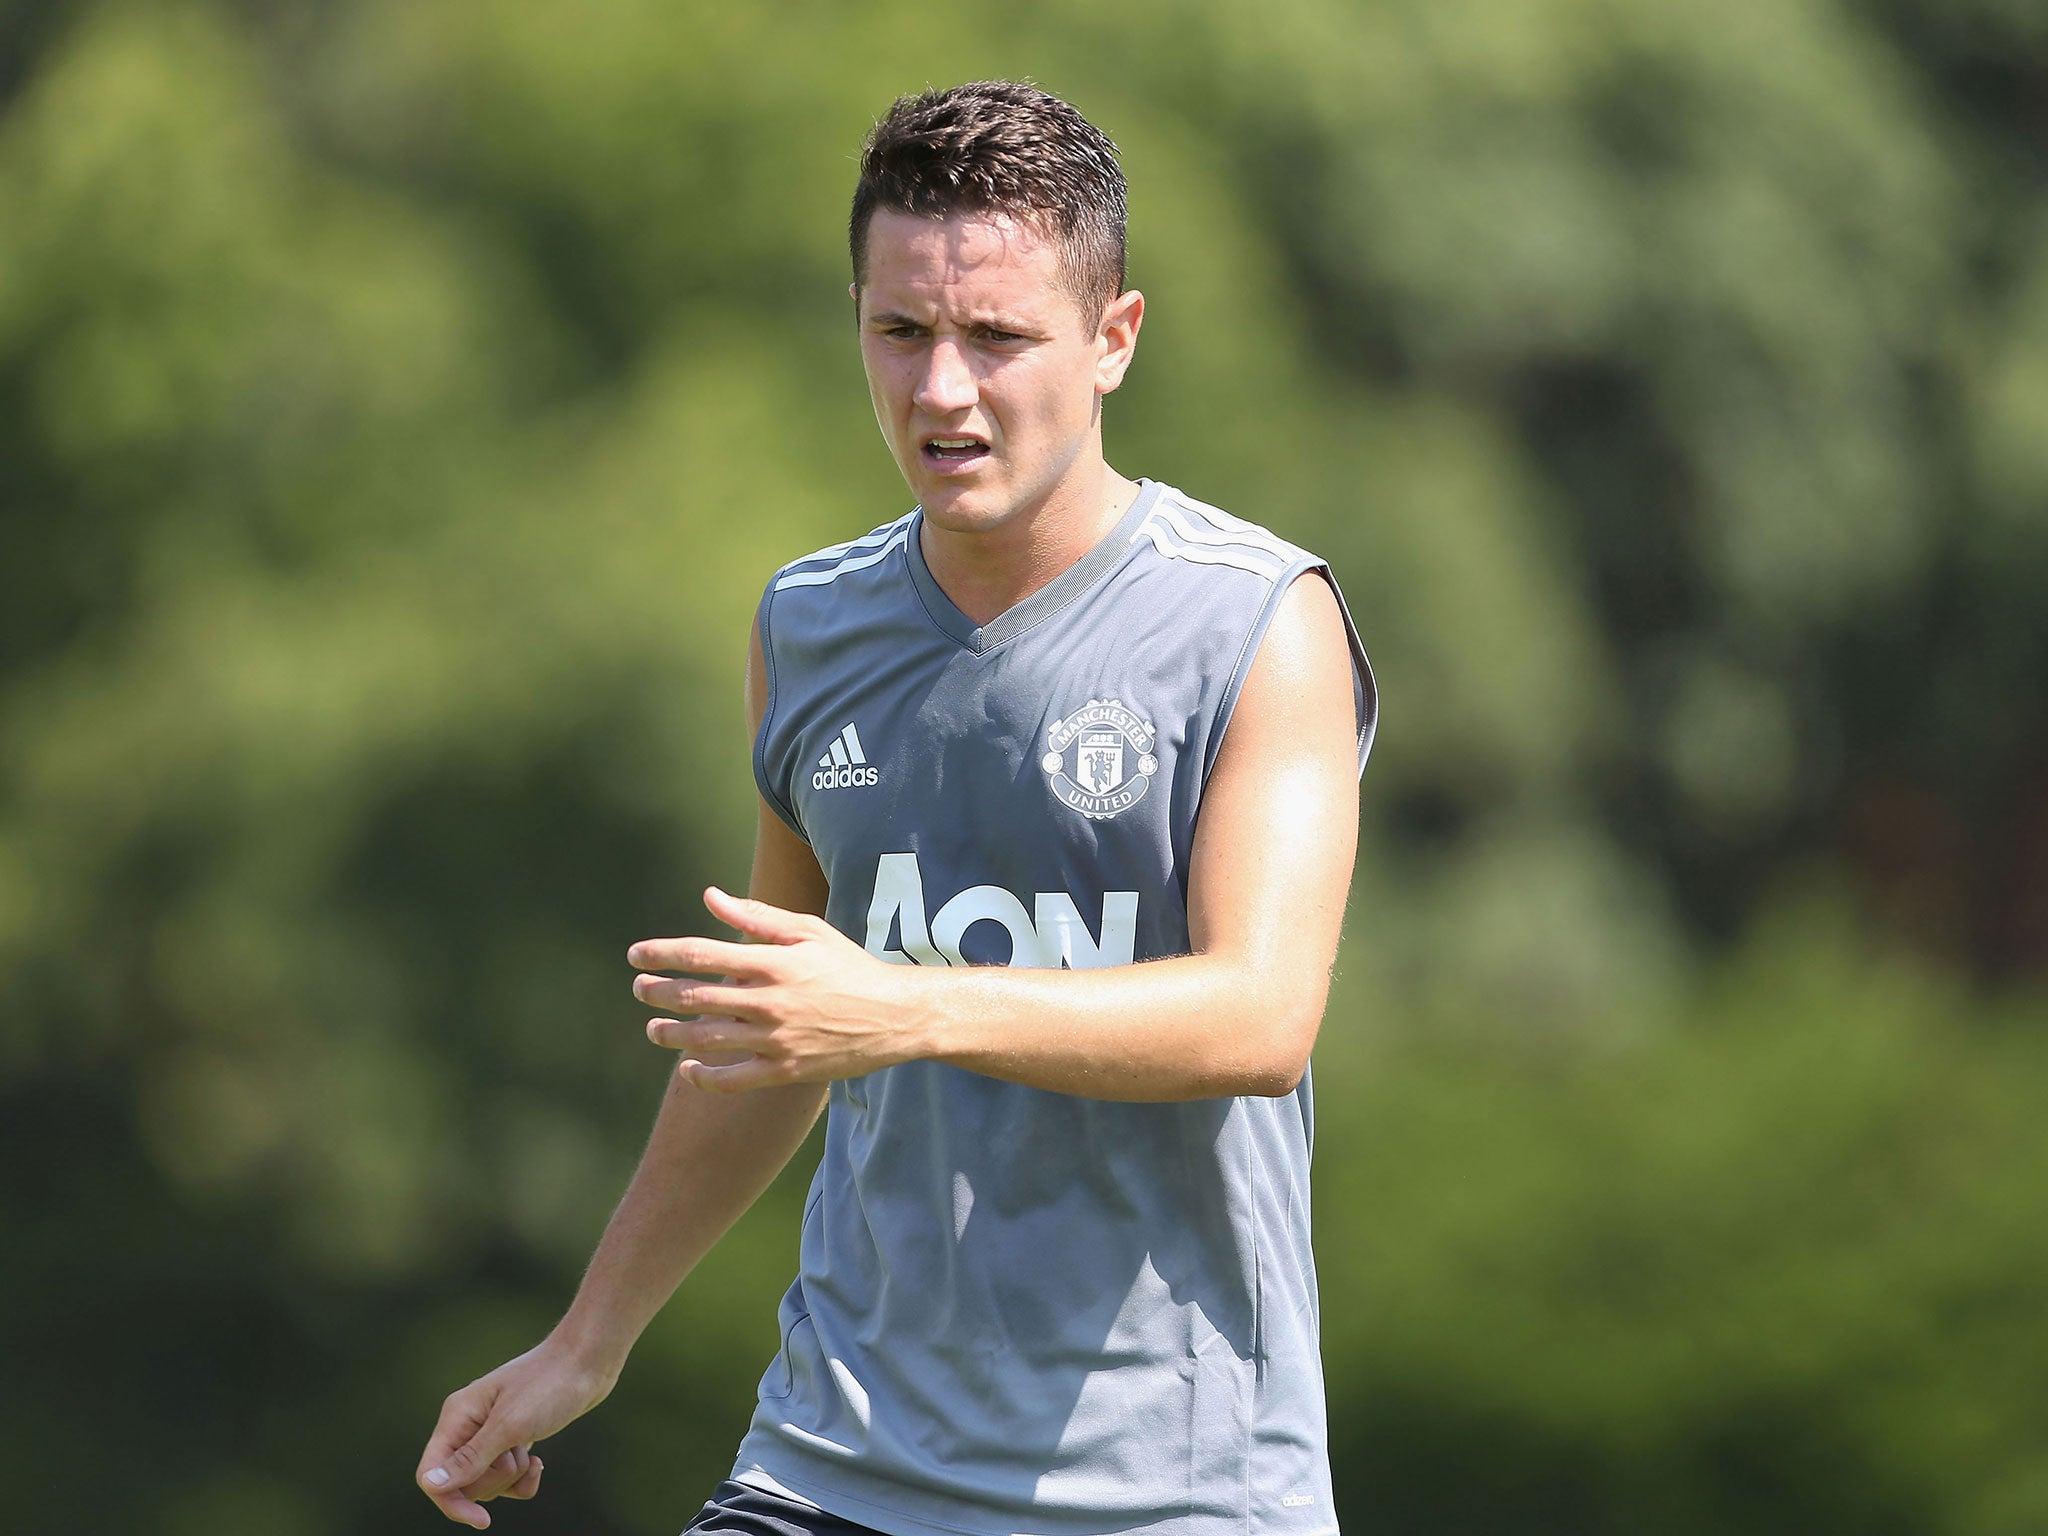 Manchester United midfielder Ander Herrera denies involvement in match-fixing